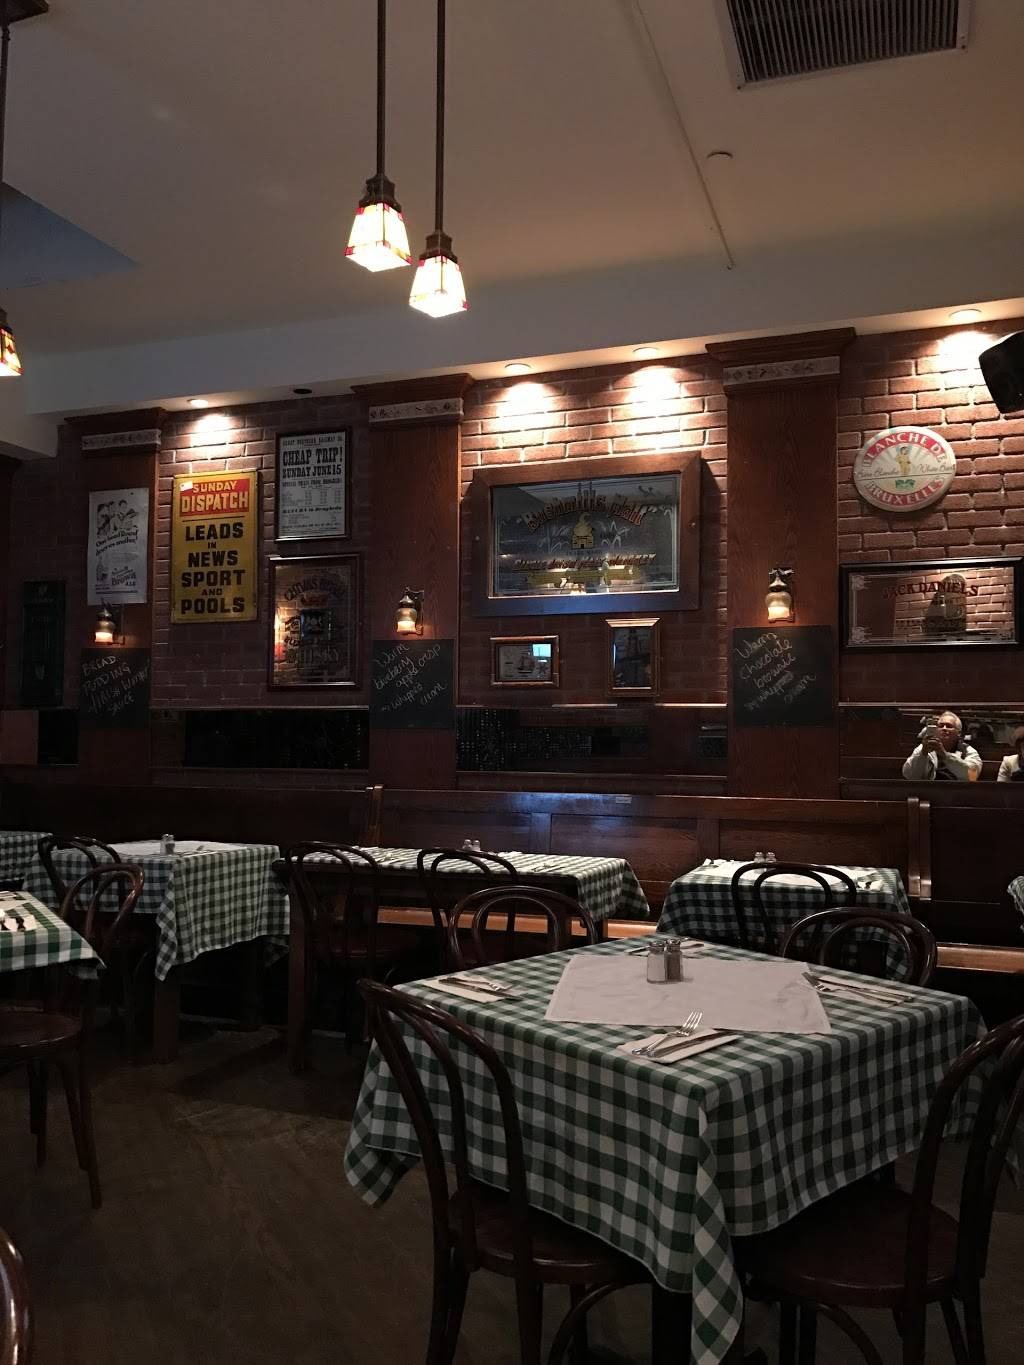 Nialls on 52nd | restaurant | 218 E 52nd St, New York, NY 10022, USA | 2128884648 OR +1 212-888-4648